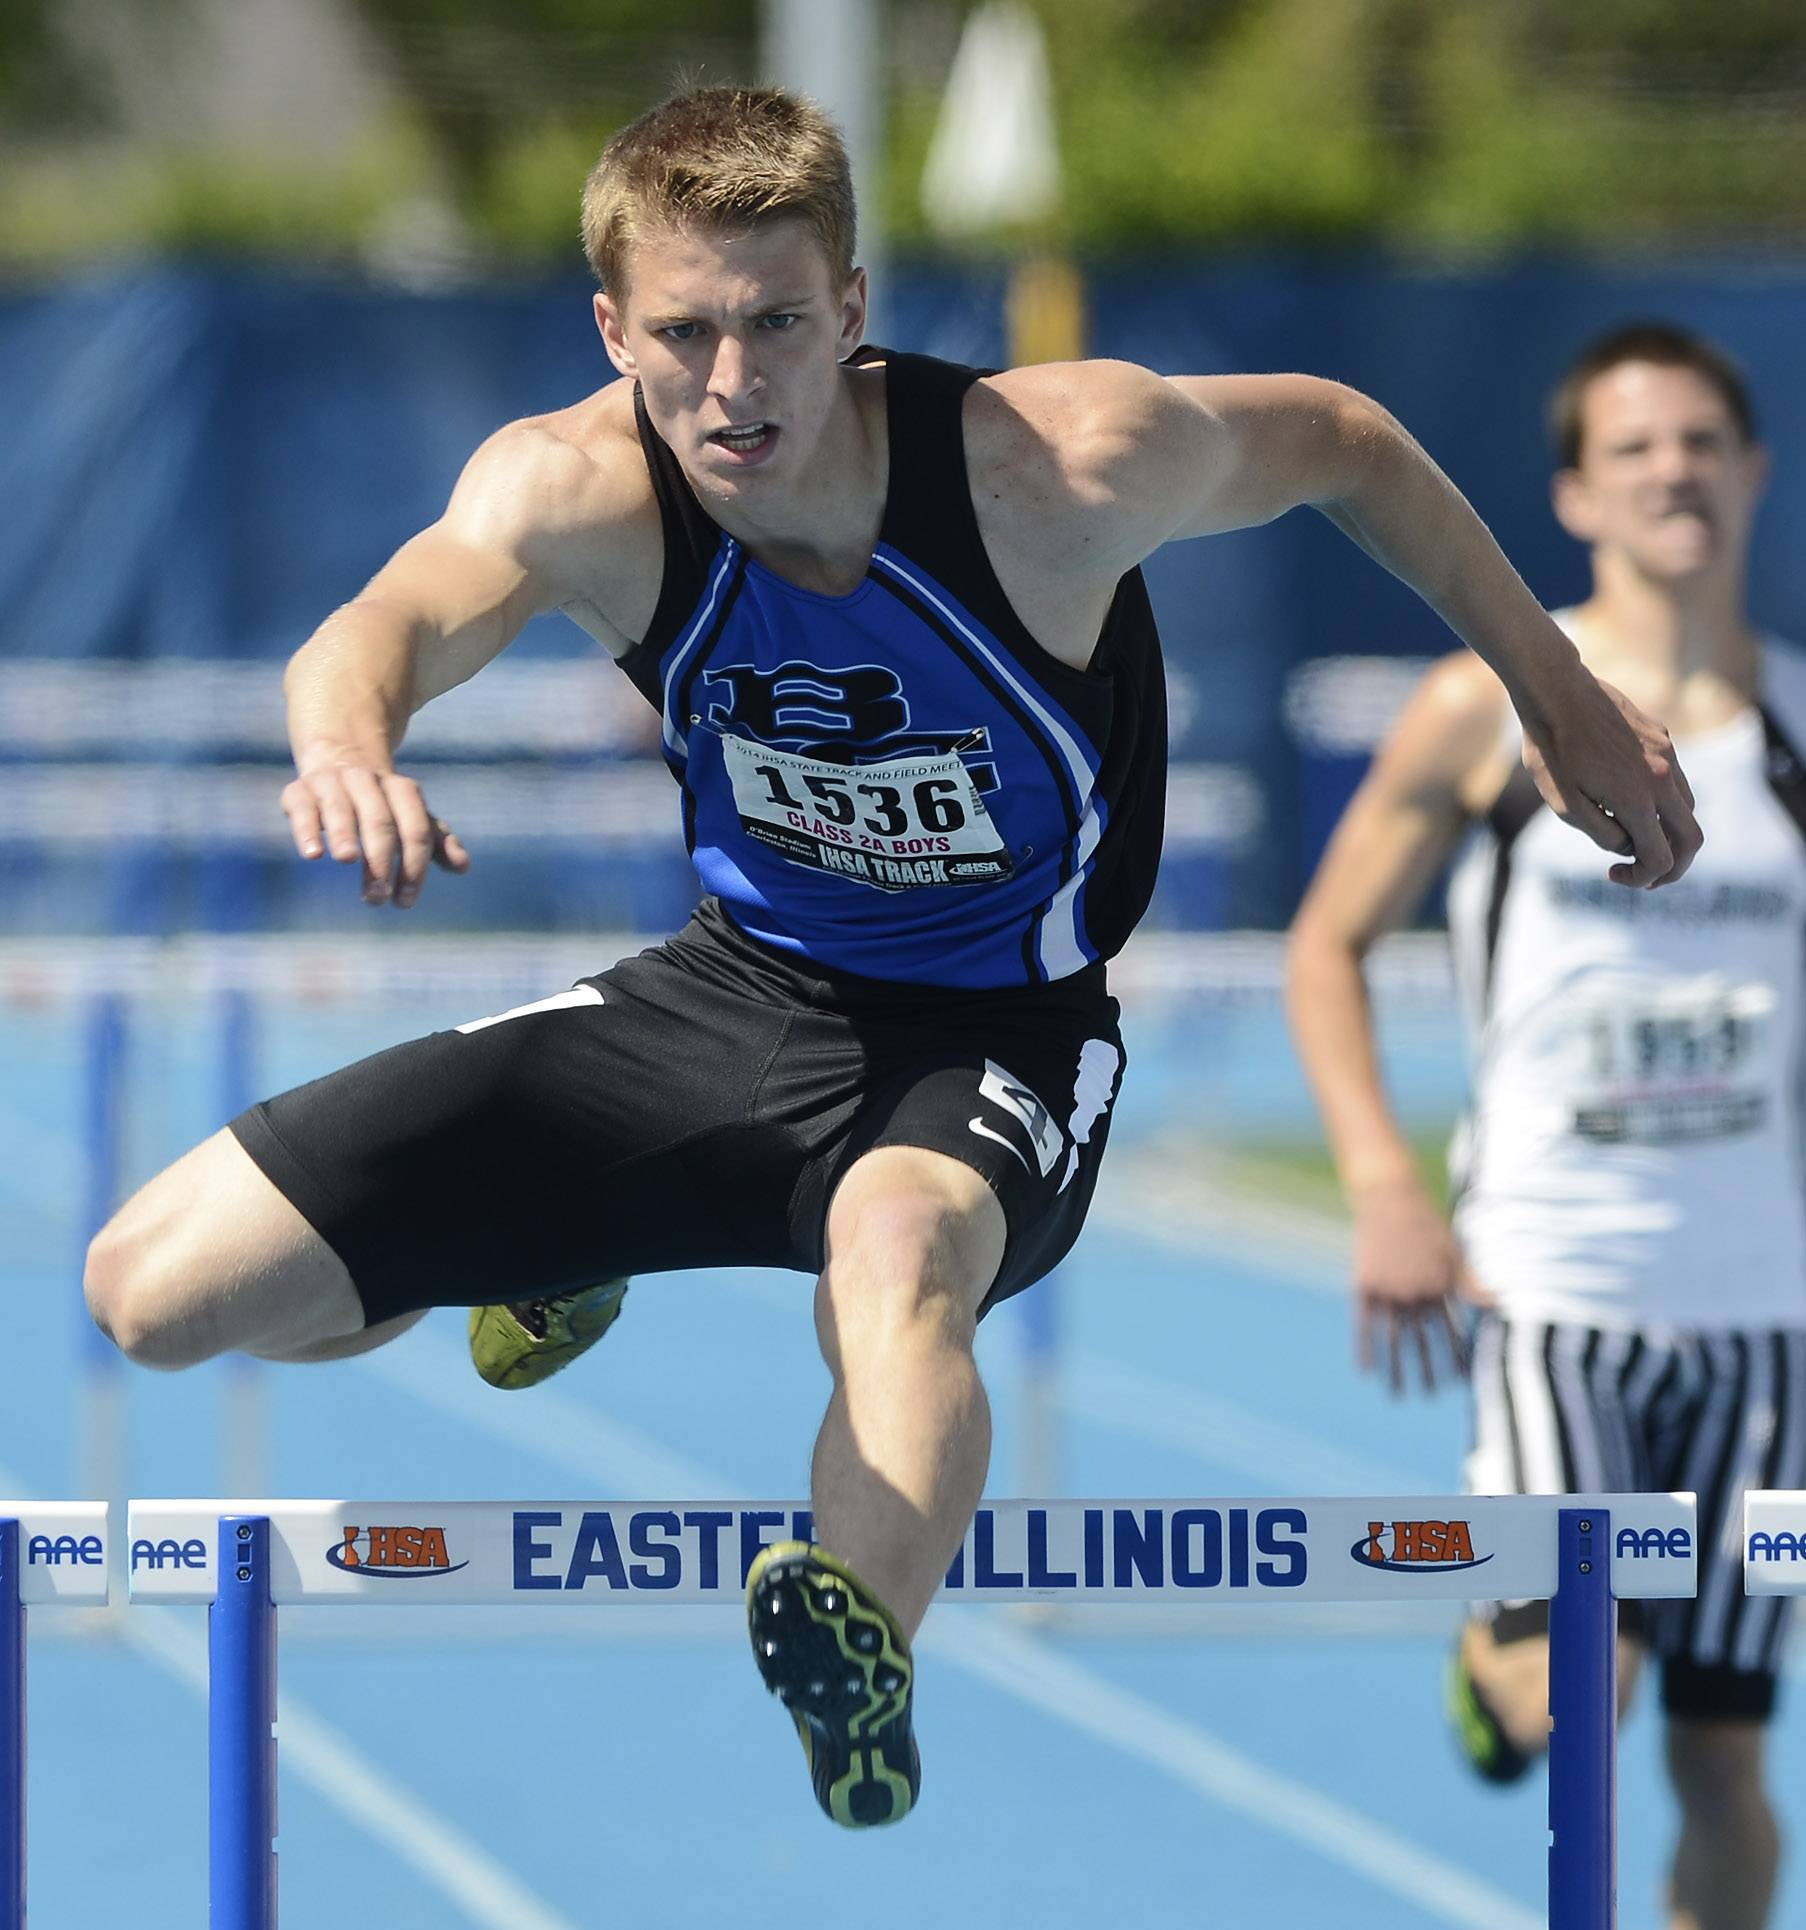 Burlington Central's Lucas Ege clears the last hurdle as he wins the 300-meter intermediate hurdles during the Class 2A state track and field finals in Charleston.